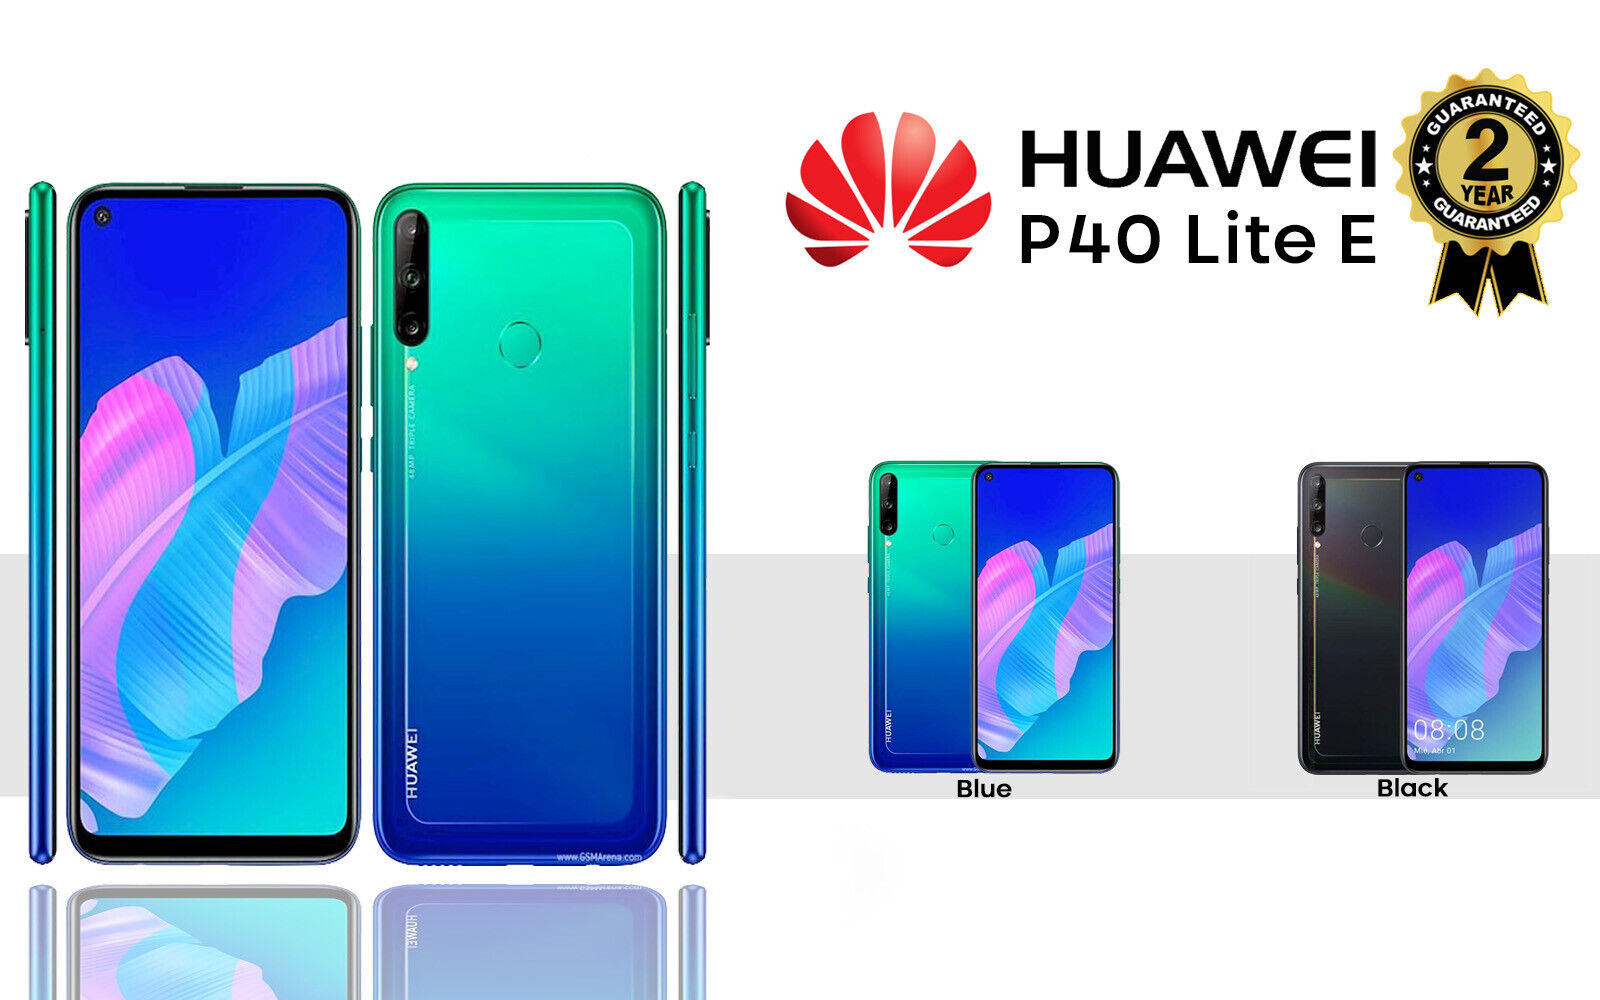 Android Phone - NEW HUAWEI P40 LITE E DUAL SIM FREE 64GB 4G LTE UNLOCKED PHONE SEALED BLUE BLACK